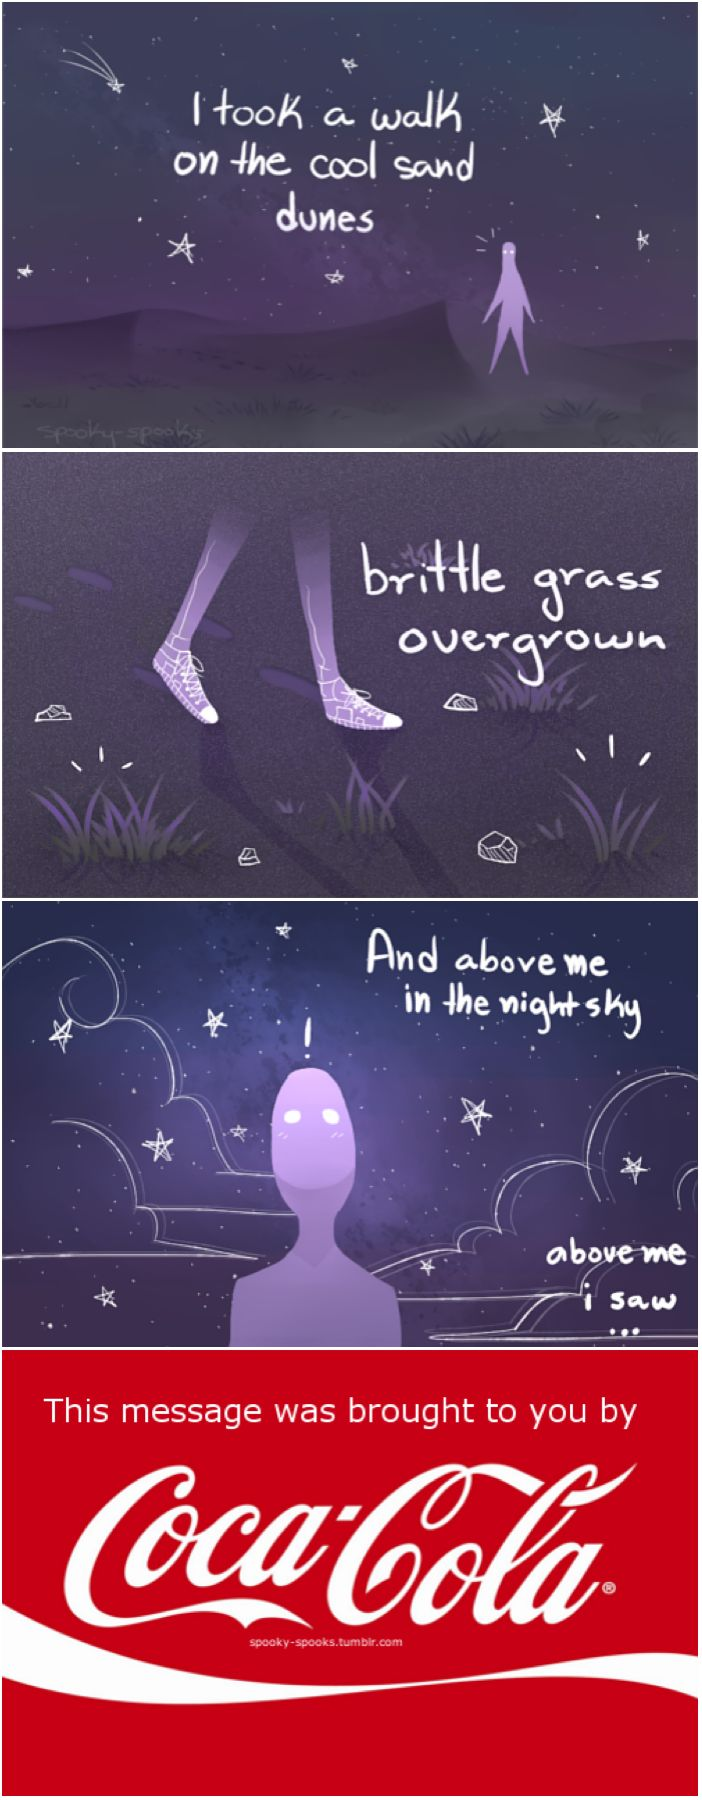 Welcome to Nightvale a message from our sponsors (Coca-Cola) comic by spooky-spooks on Tumblr